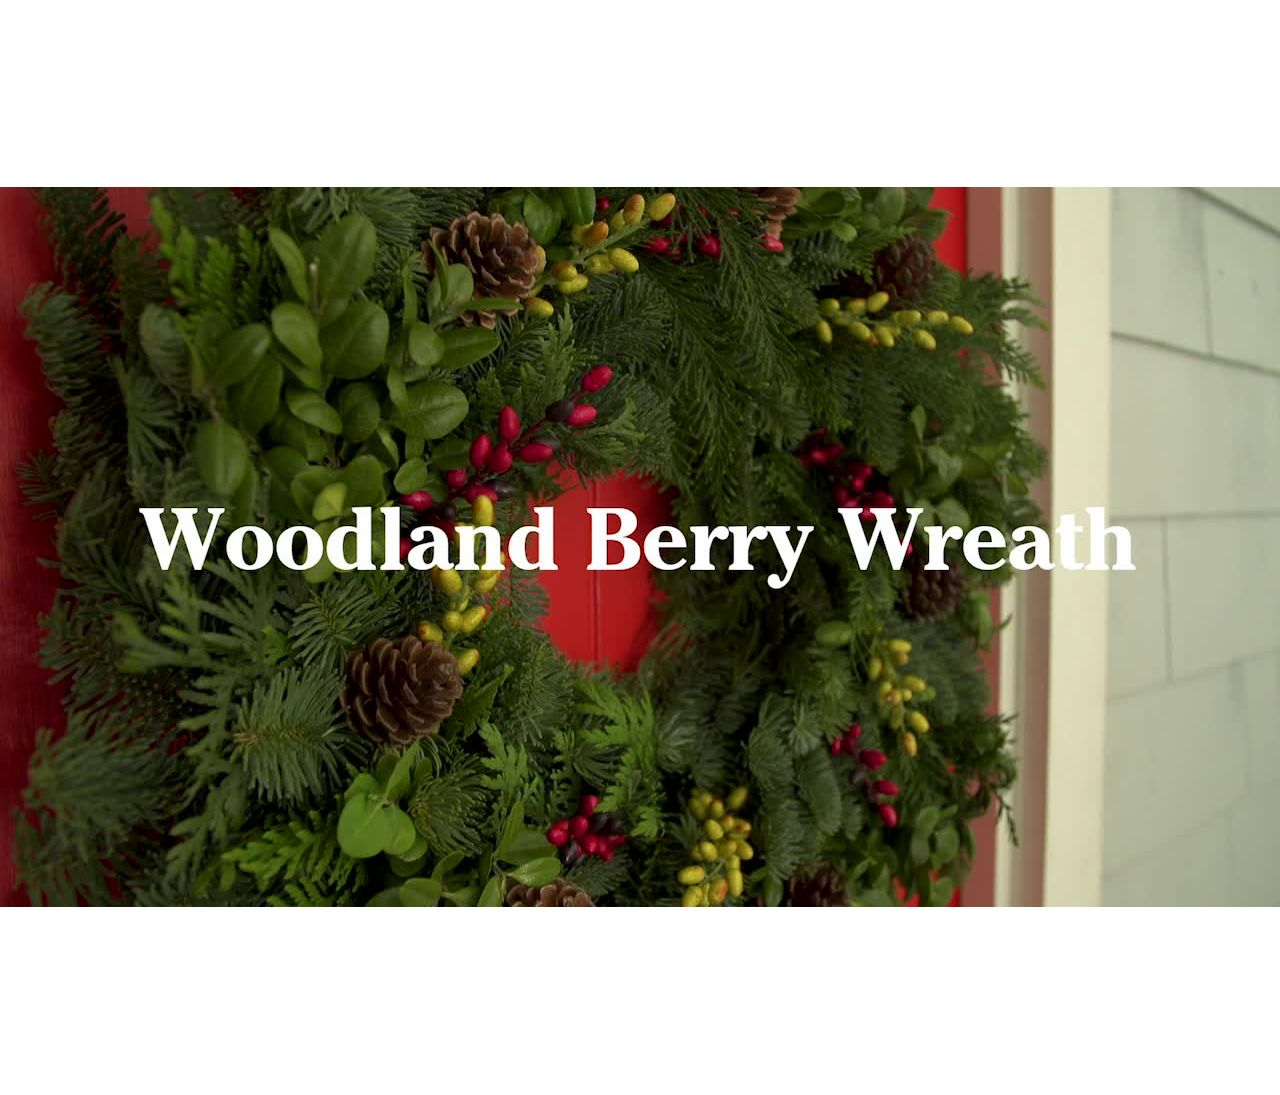 Video: WOODLAND BERRY WREATH 24